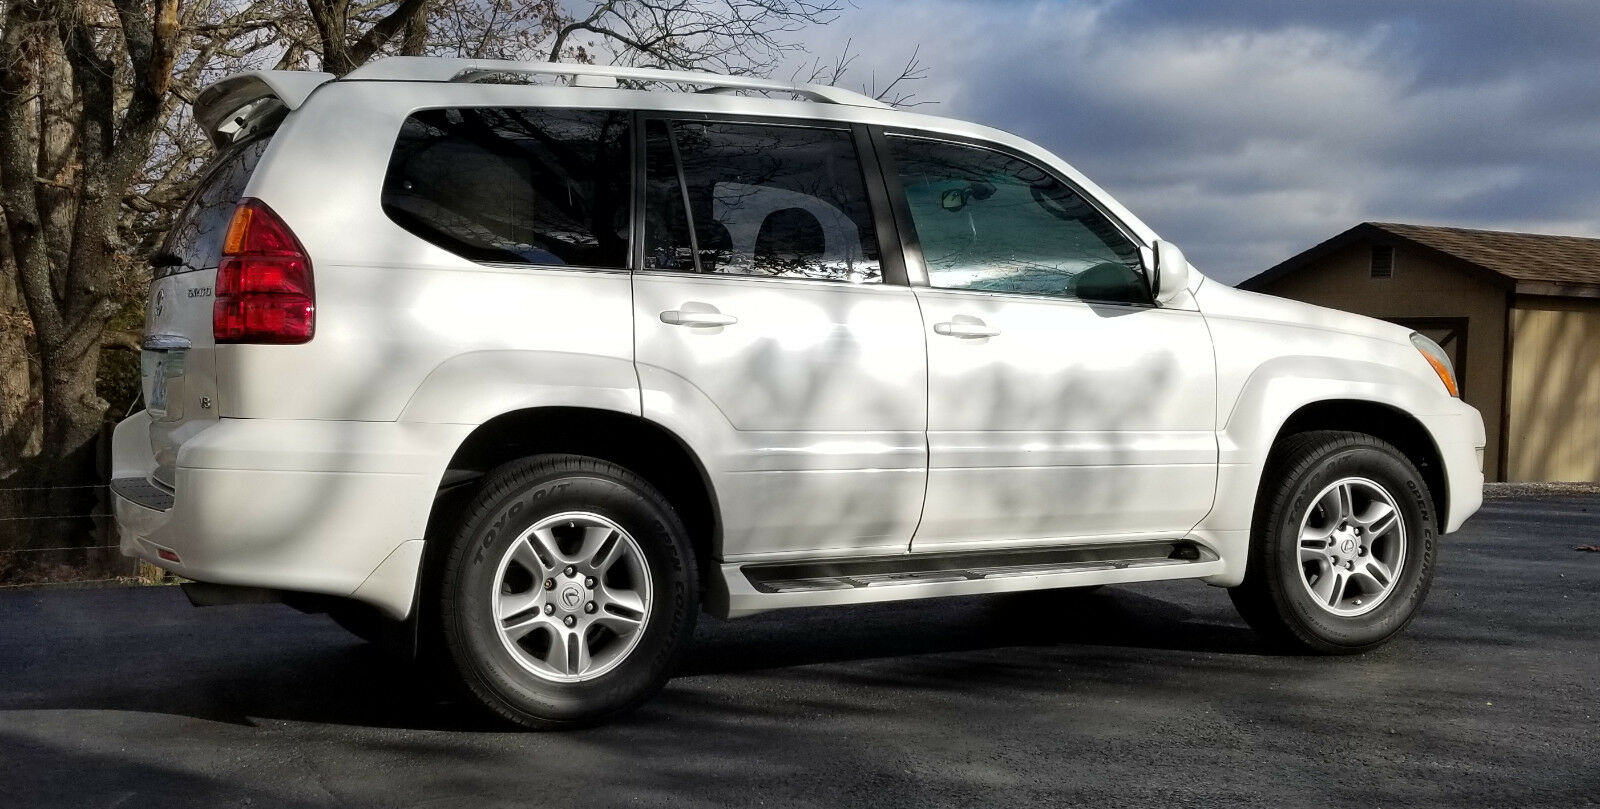 2004 Lexus GX All Leather and Woodgrain 2004 All Wheel Drive GX 470 Pearl White, tow package, sunroof, all leather V8